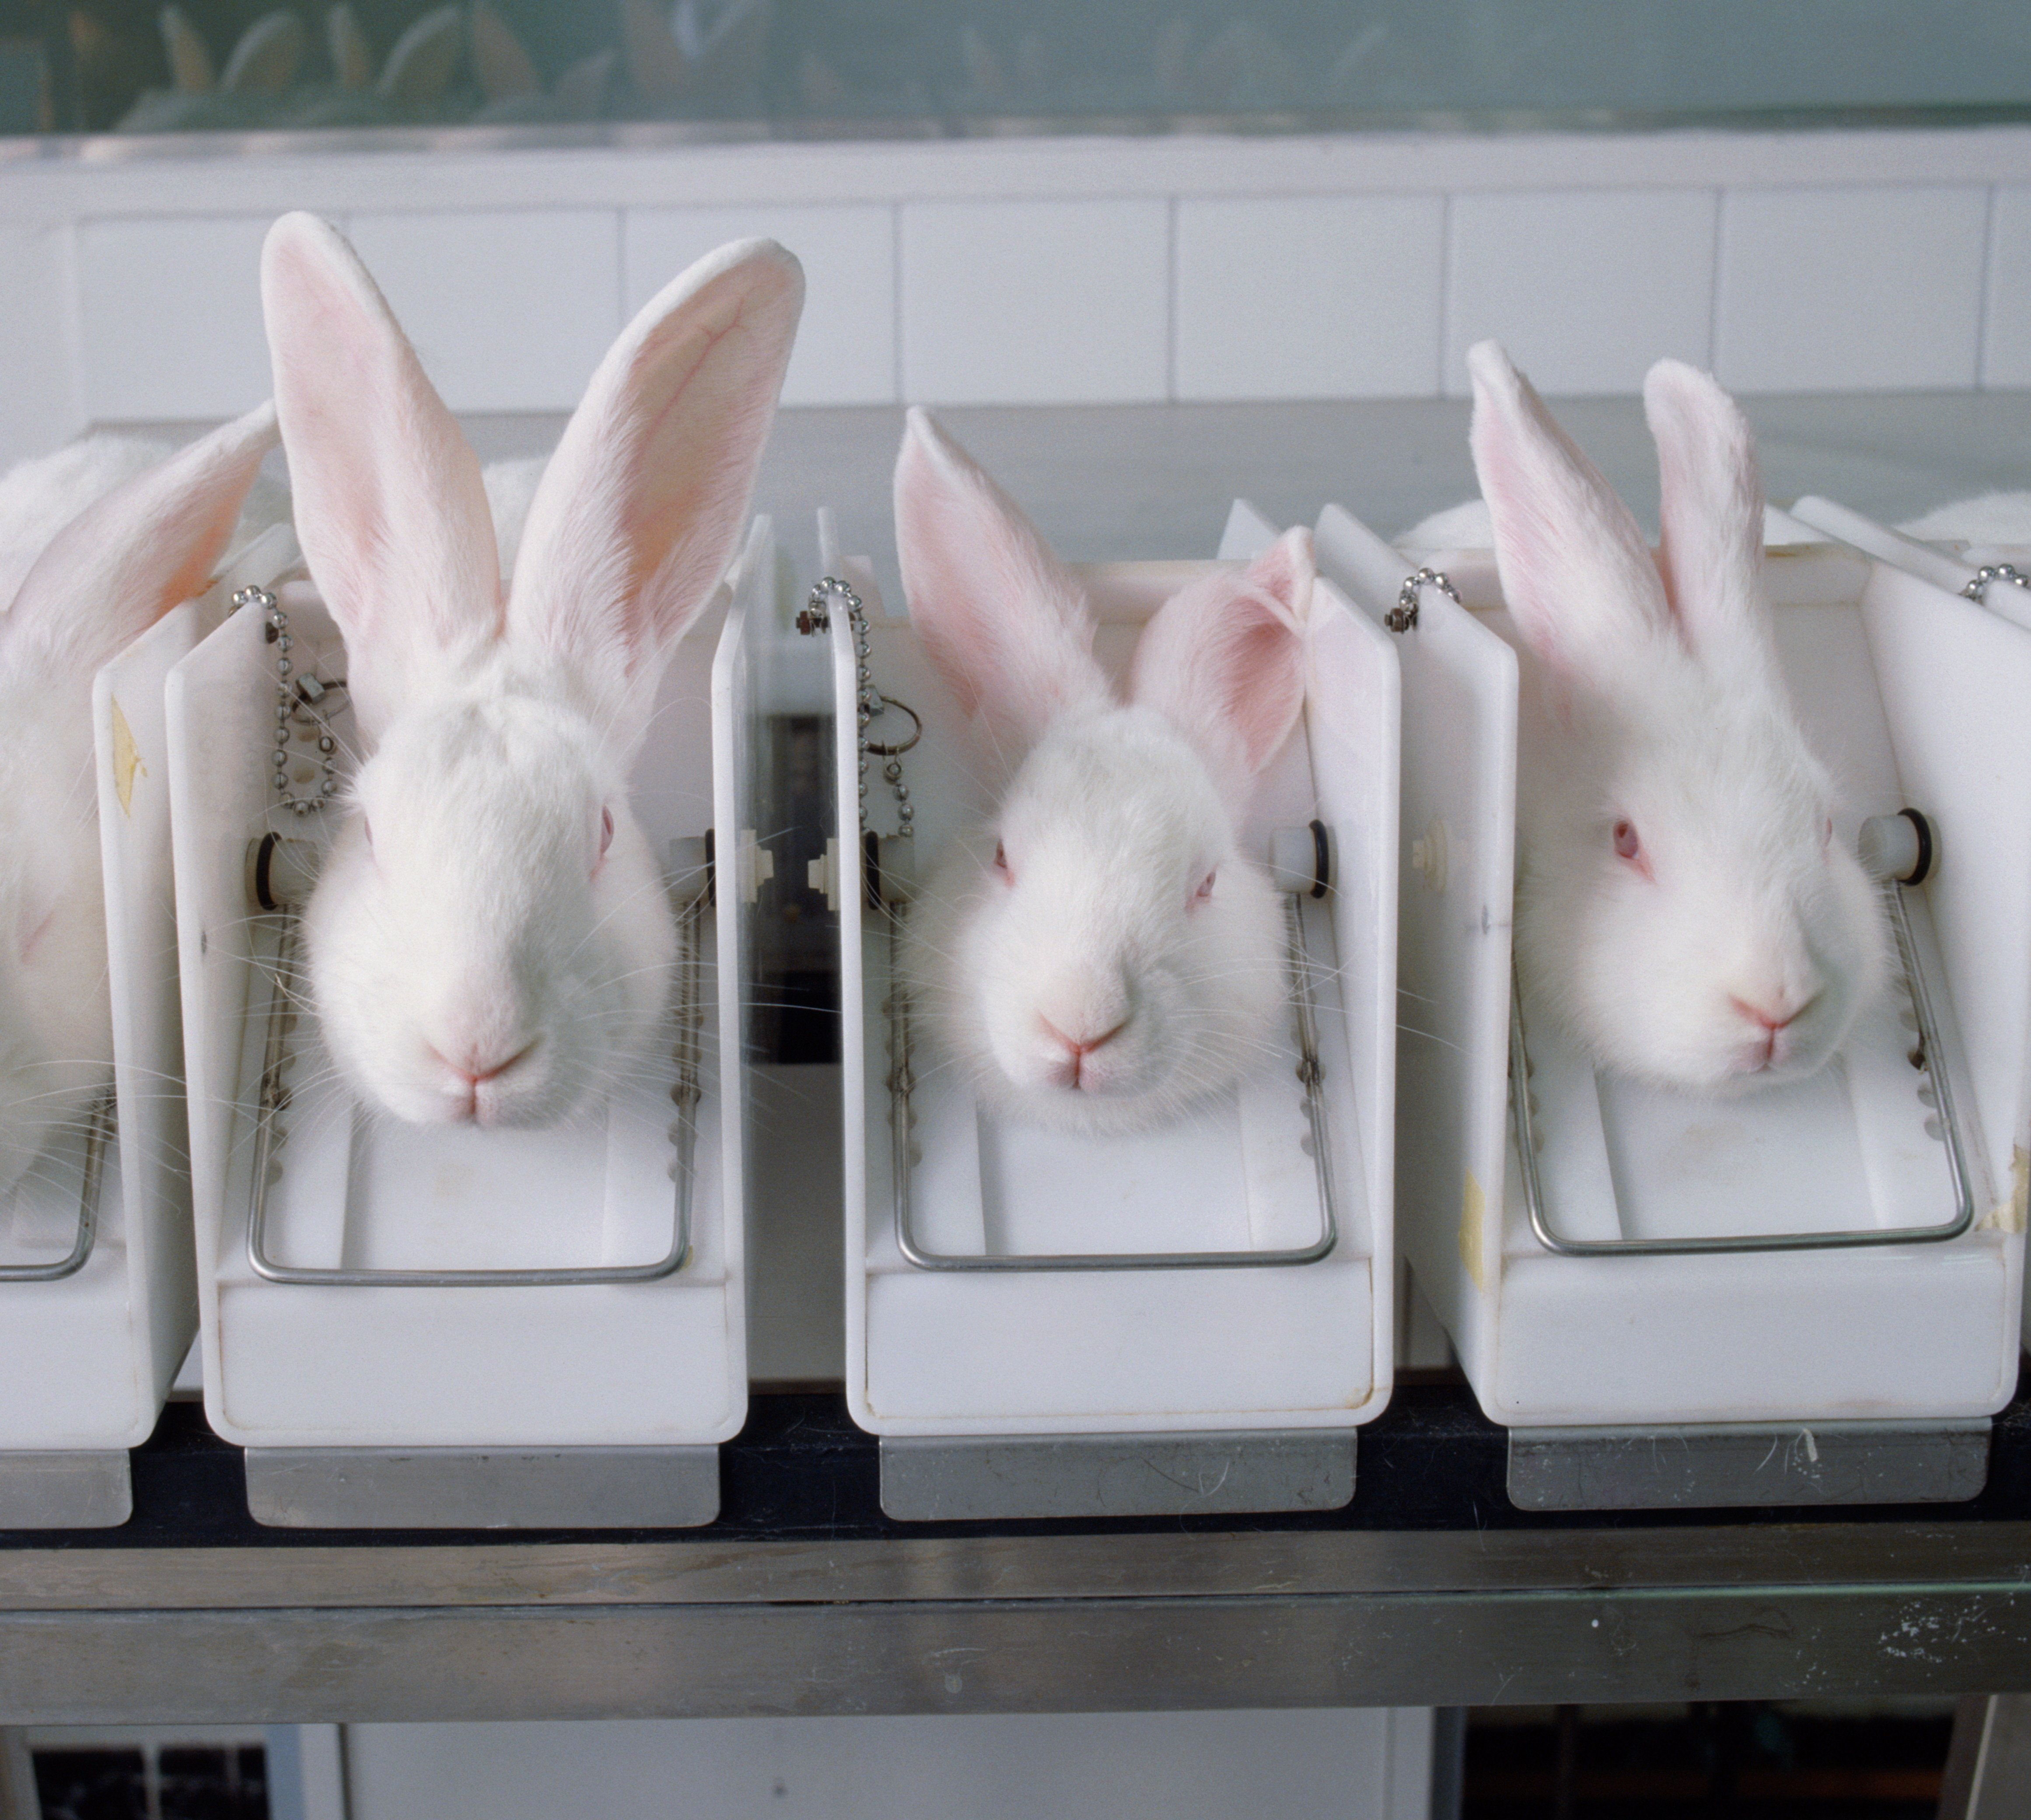 A stock image of rabbits restrained for laboratory